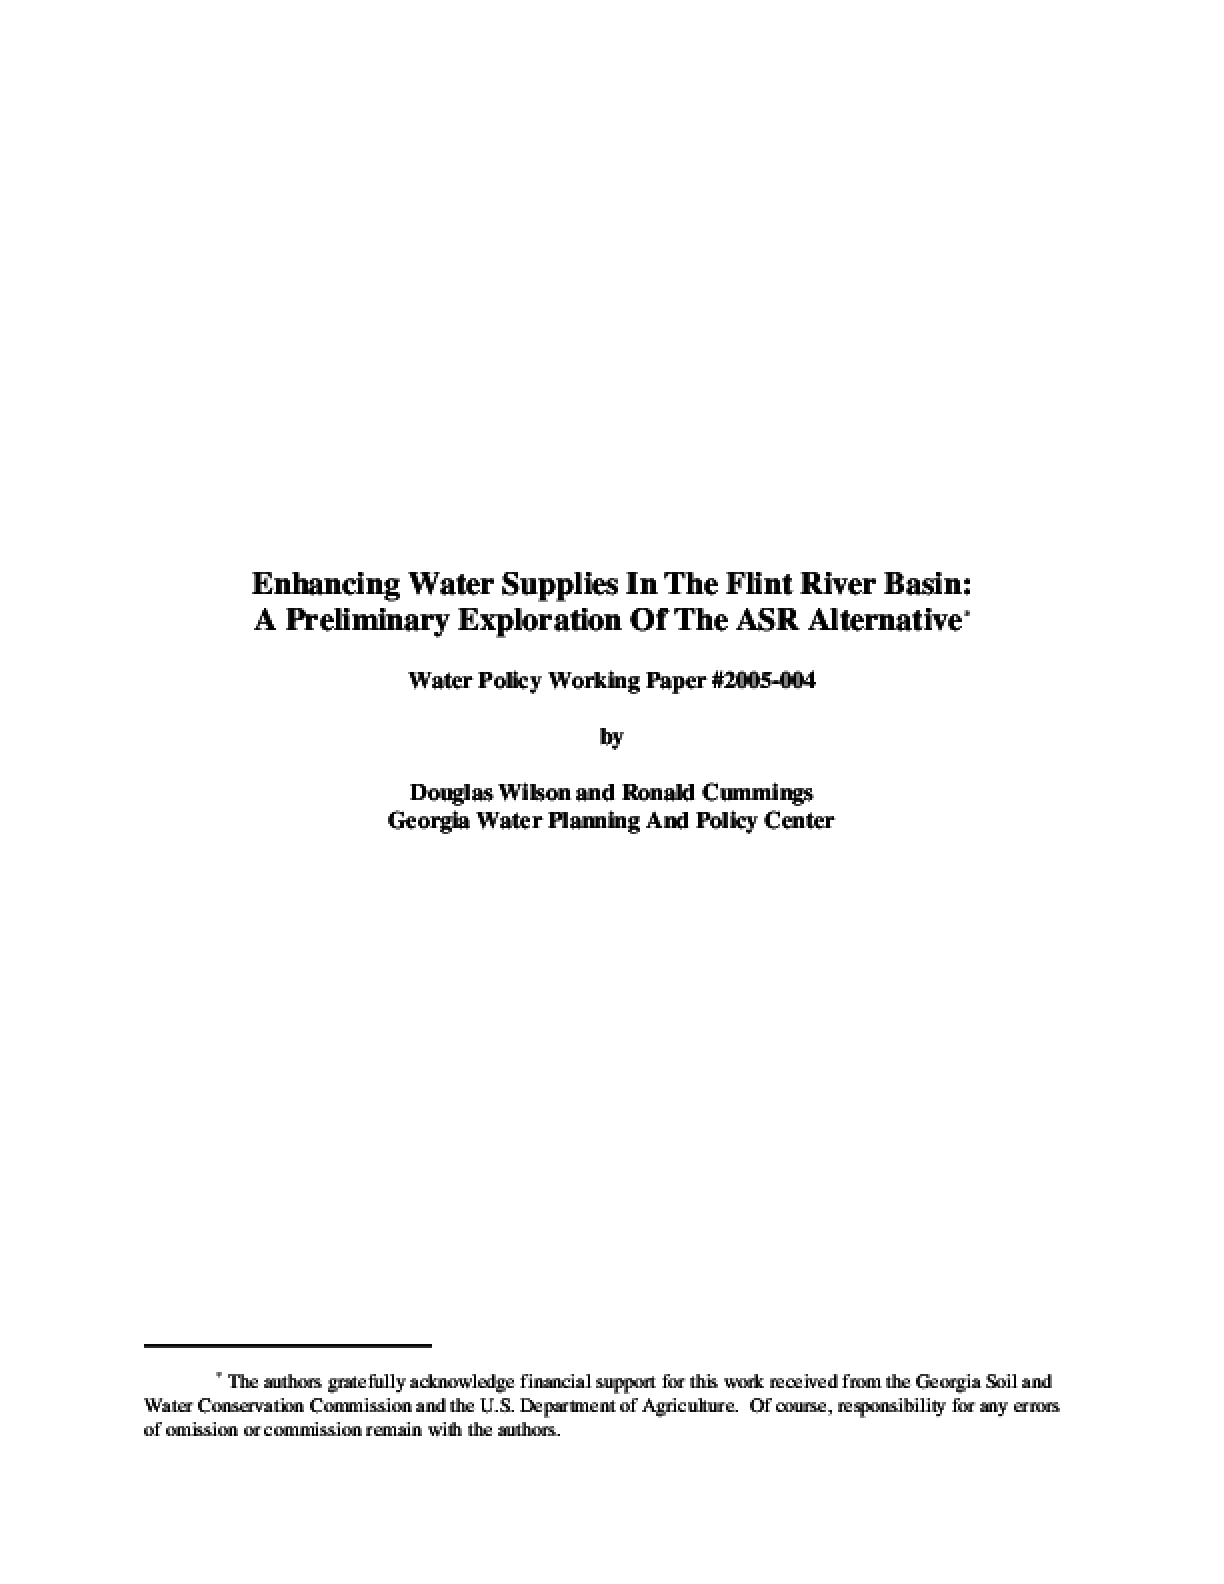 Enhancing Water Supplies In The Flint River Basin: A Preliminary Exploration Of The ASR Alternative